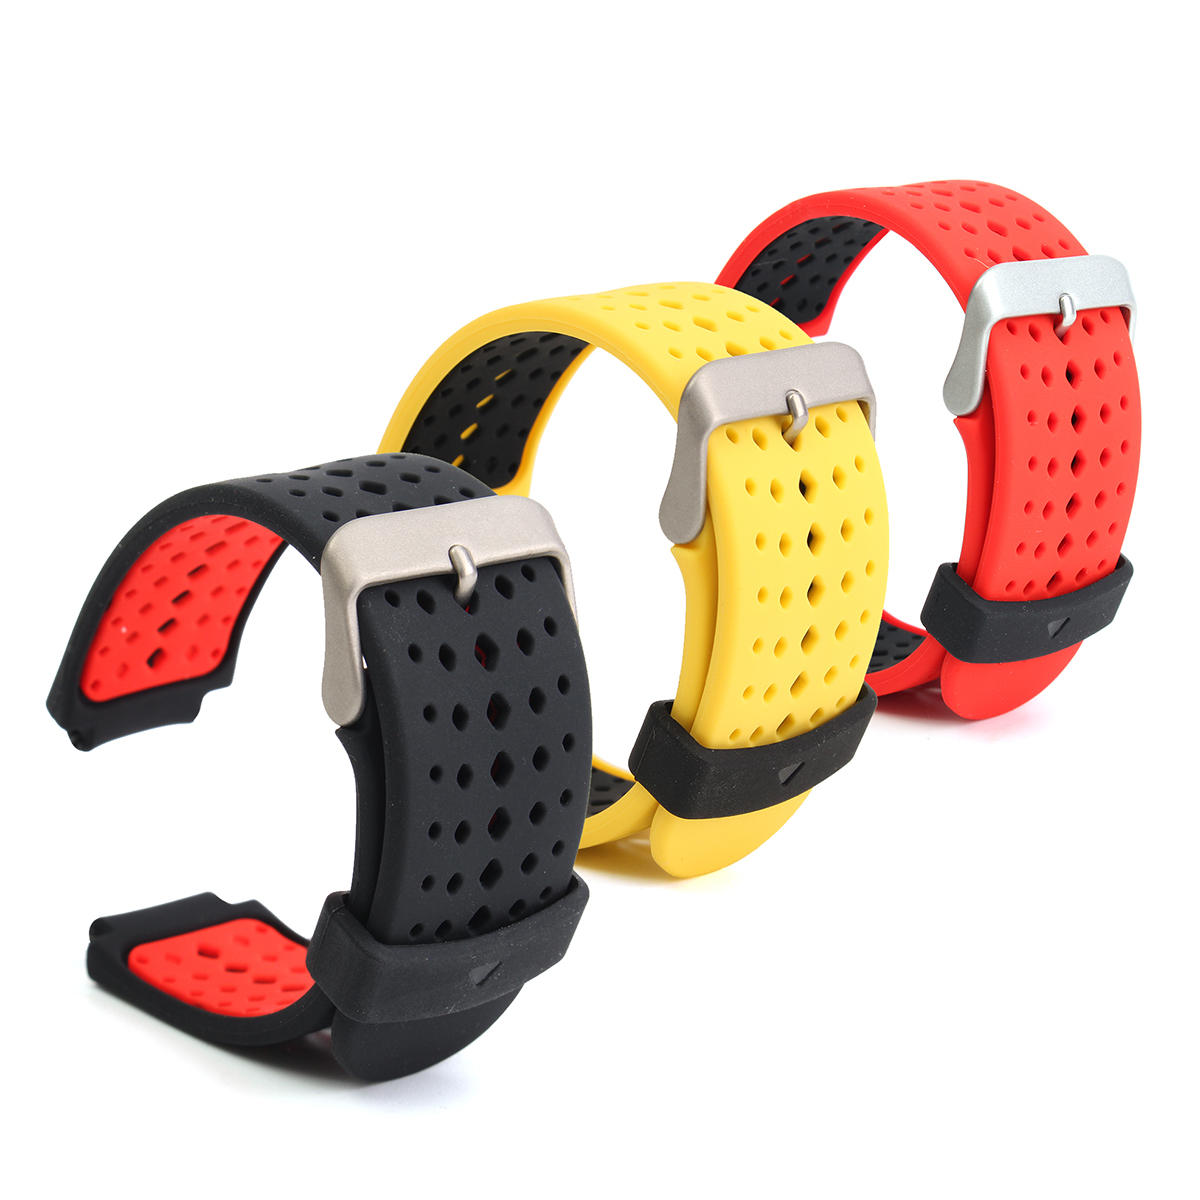 Replacement Wrist Band Silicone Watch Band For Garmin Forerunner 230/235/630